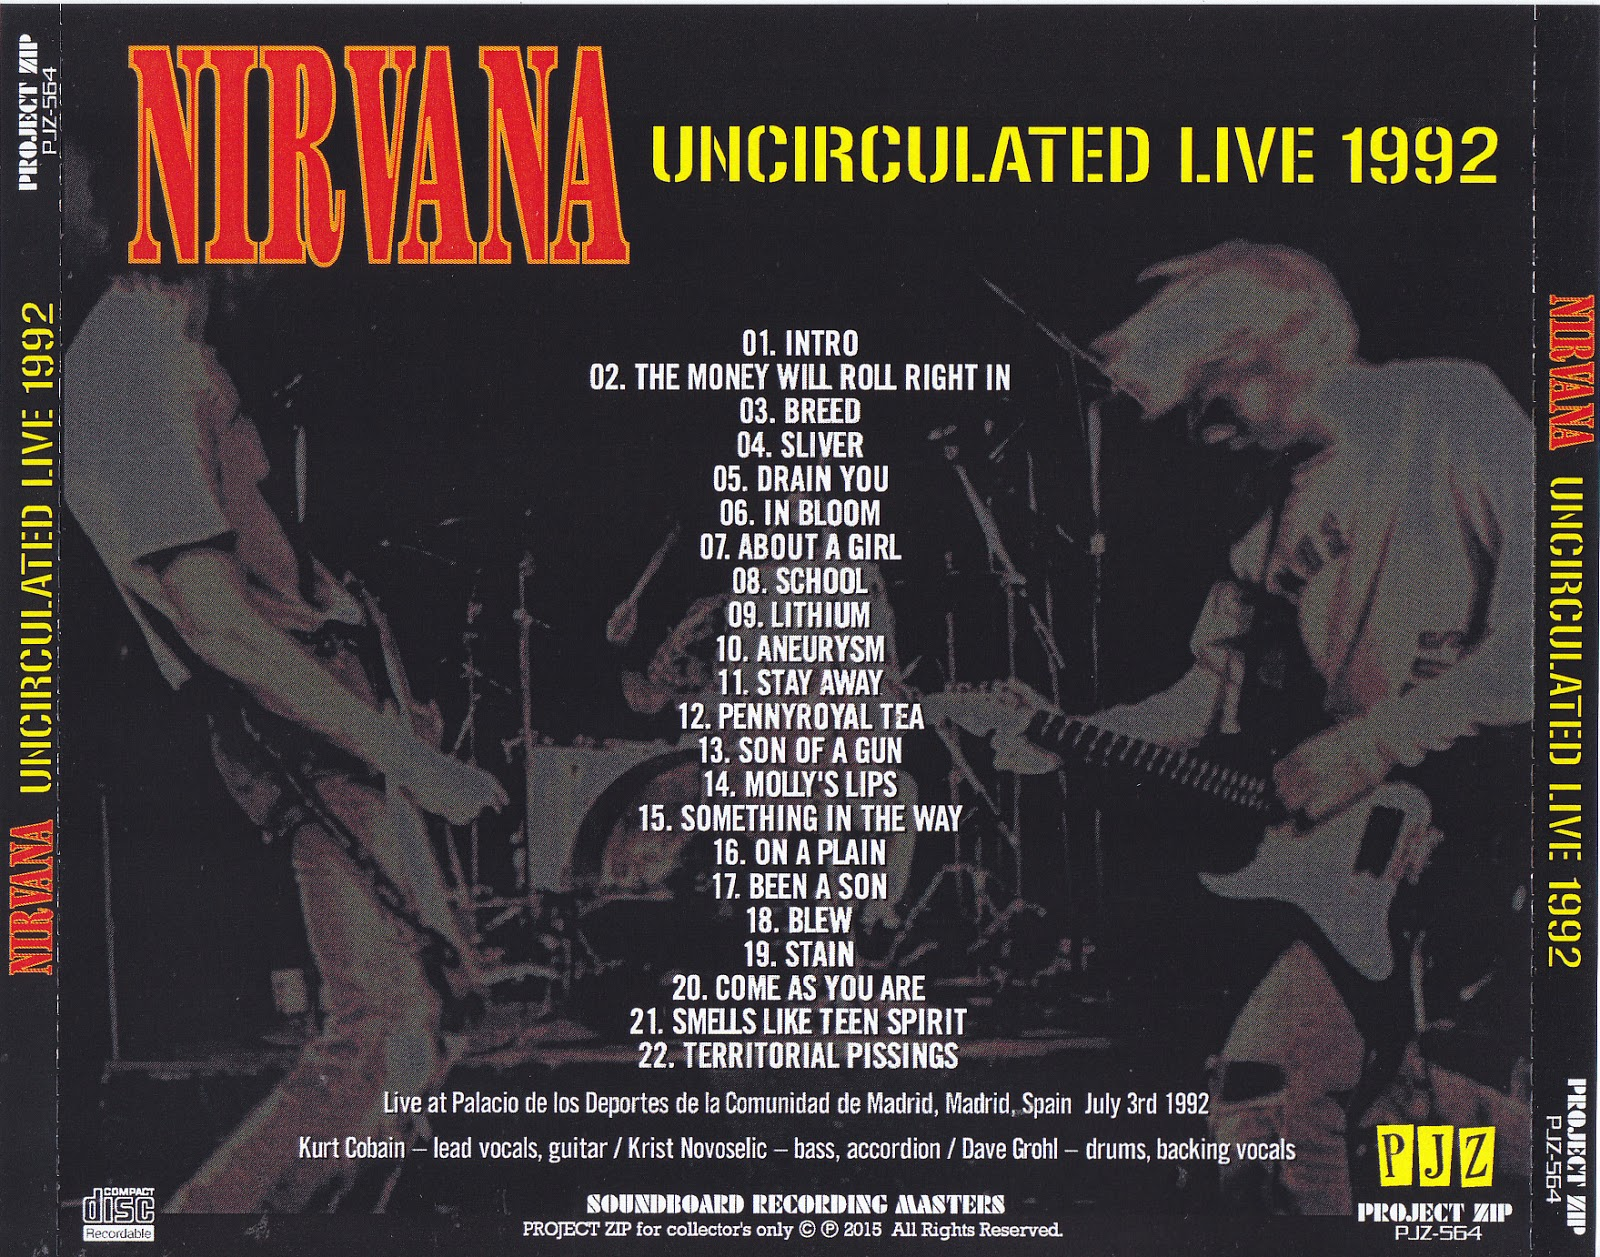 an introduction to the history of nirvana